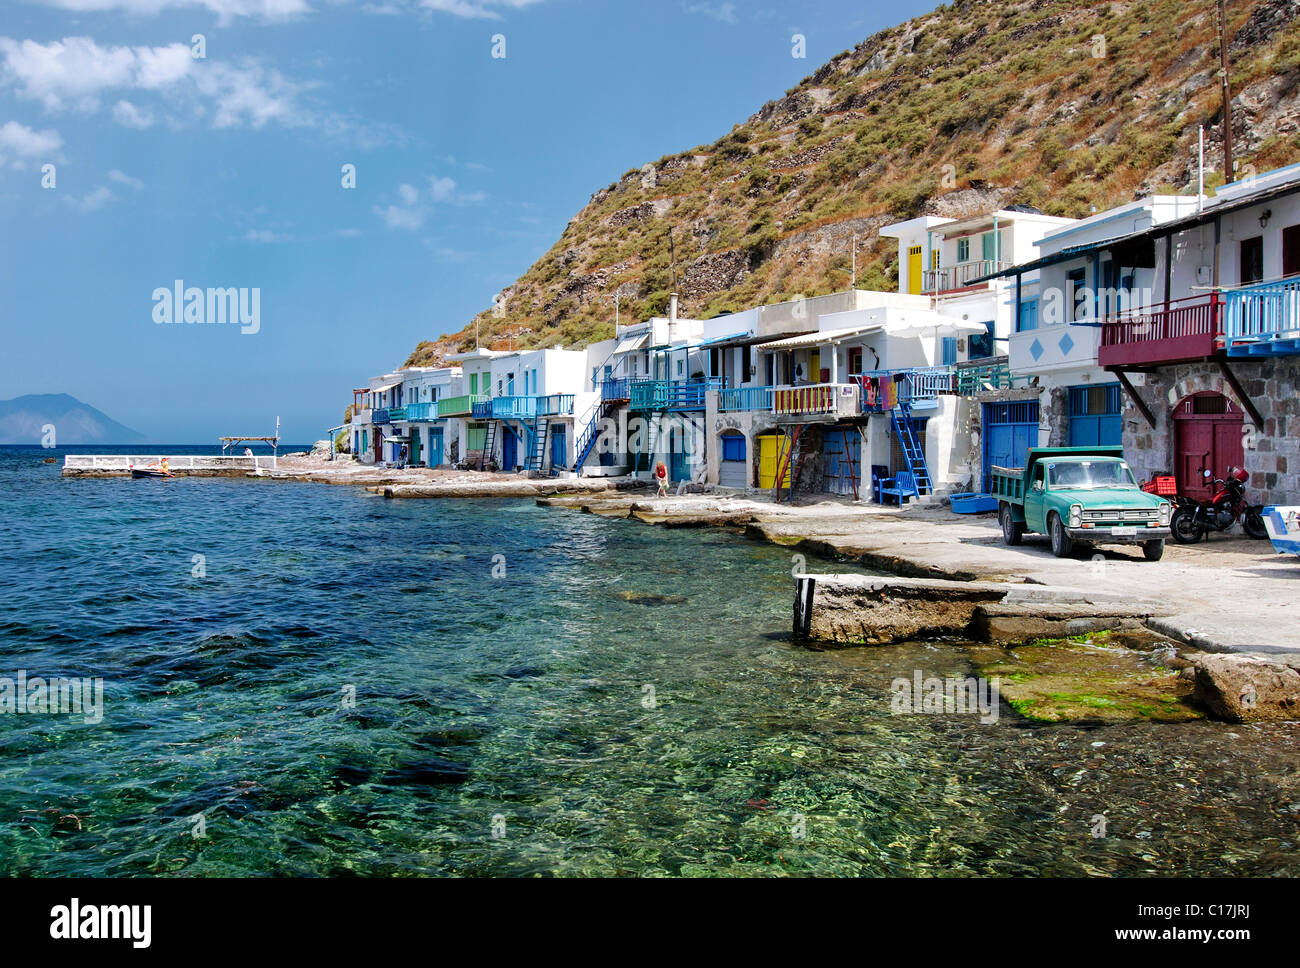 Colourful houses in the small fishing village of Klima on the island of Milos, Cyclades, Greece, Europe - Stock Image